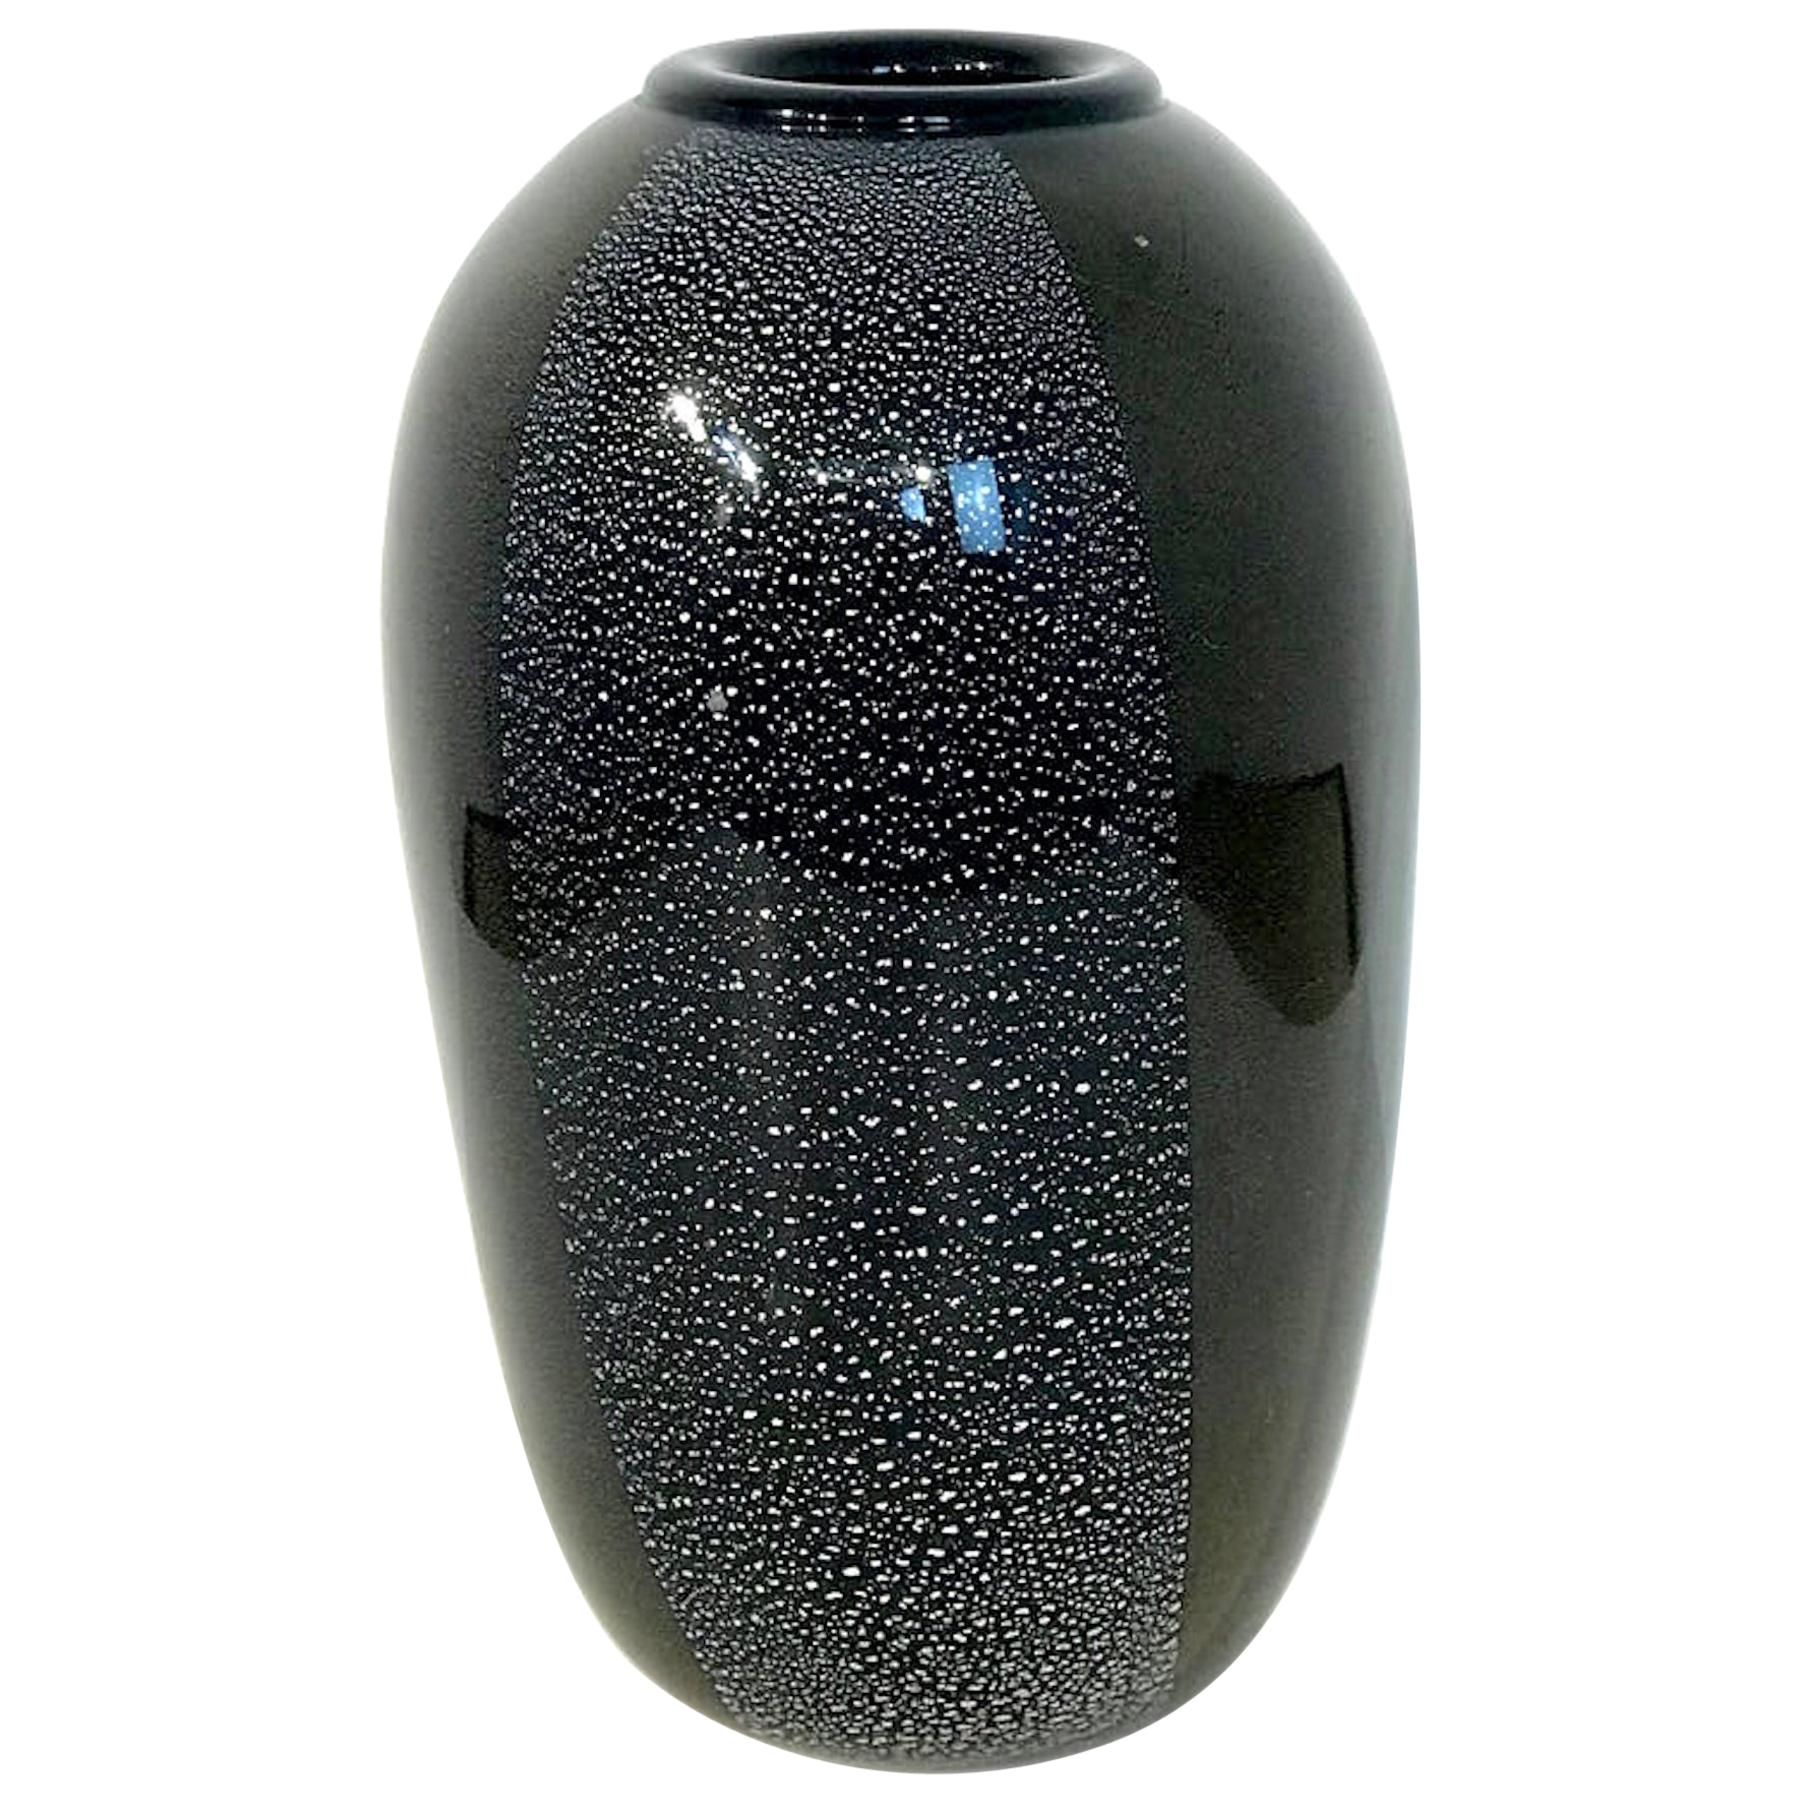 Black and Silver Murano Glass Vase, by Ghisetti Murano